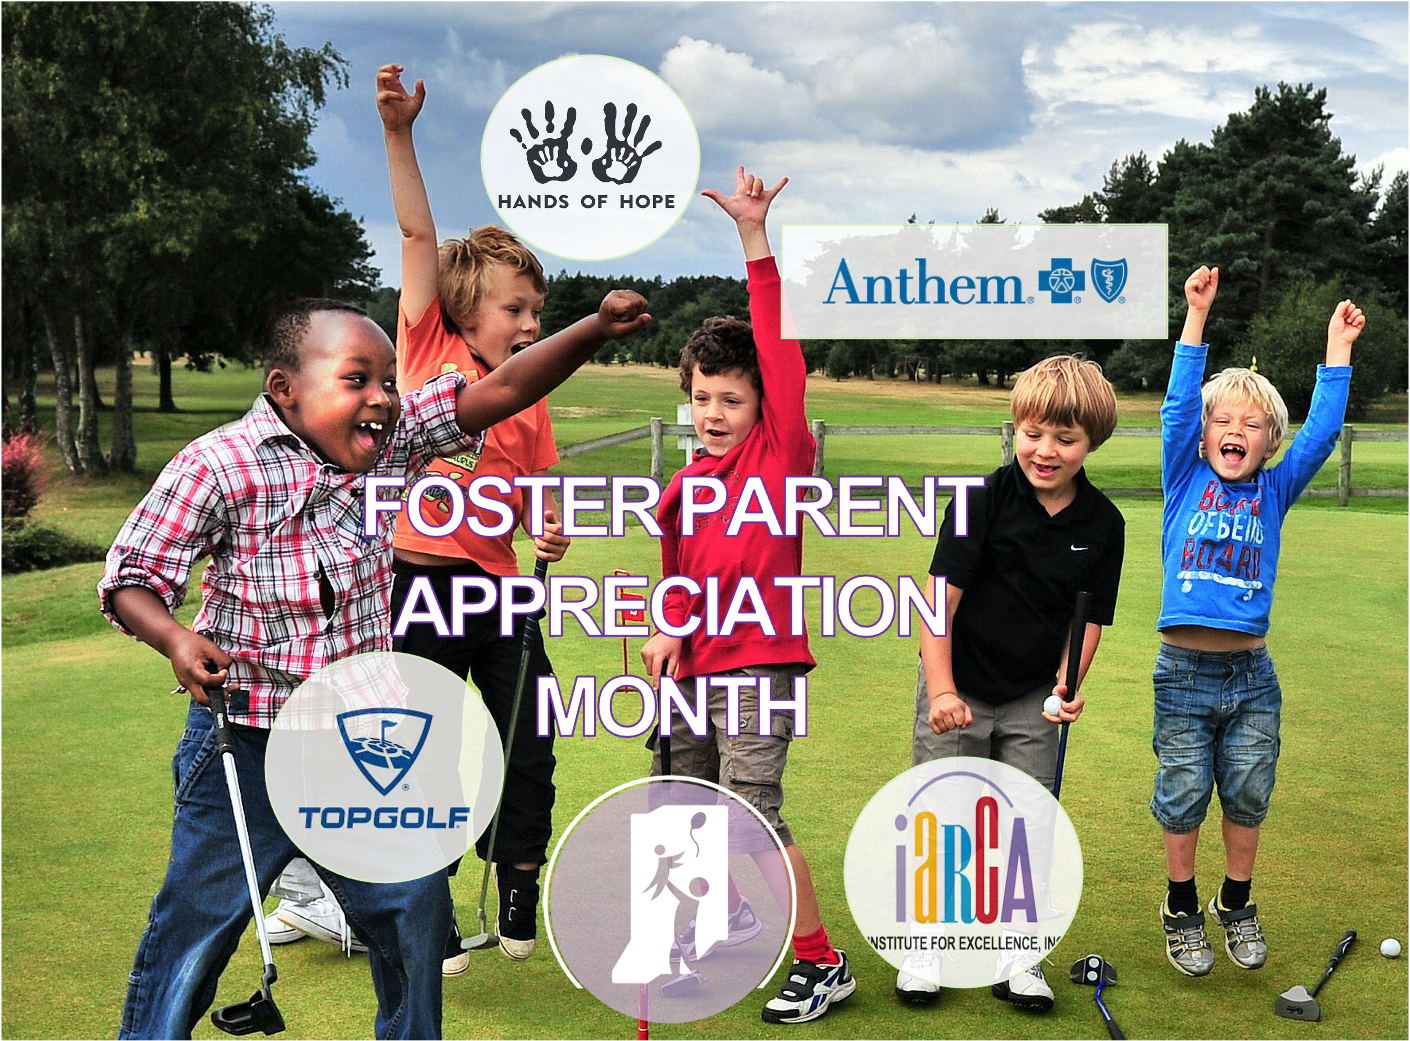 POSTPONED: Top Golf Fundraiser Support Indiana Foster Families And Children! May 16th 11am-2pm